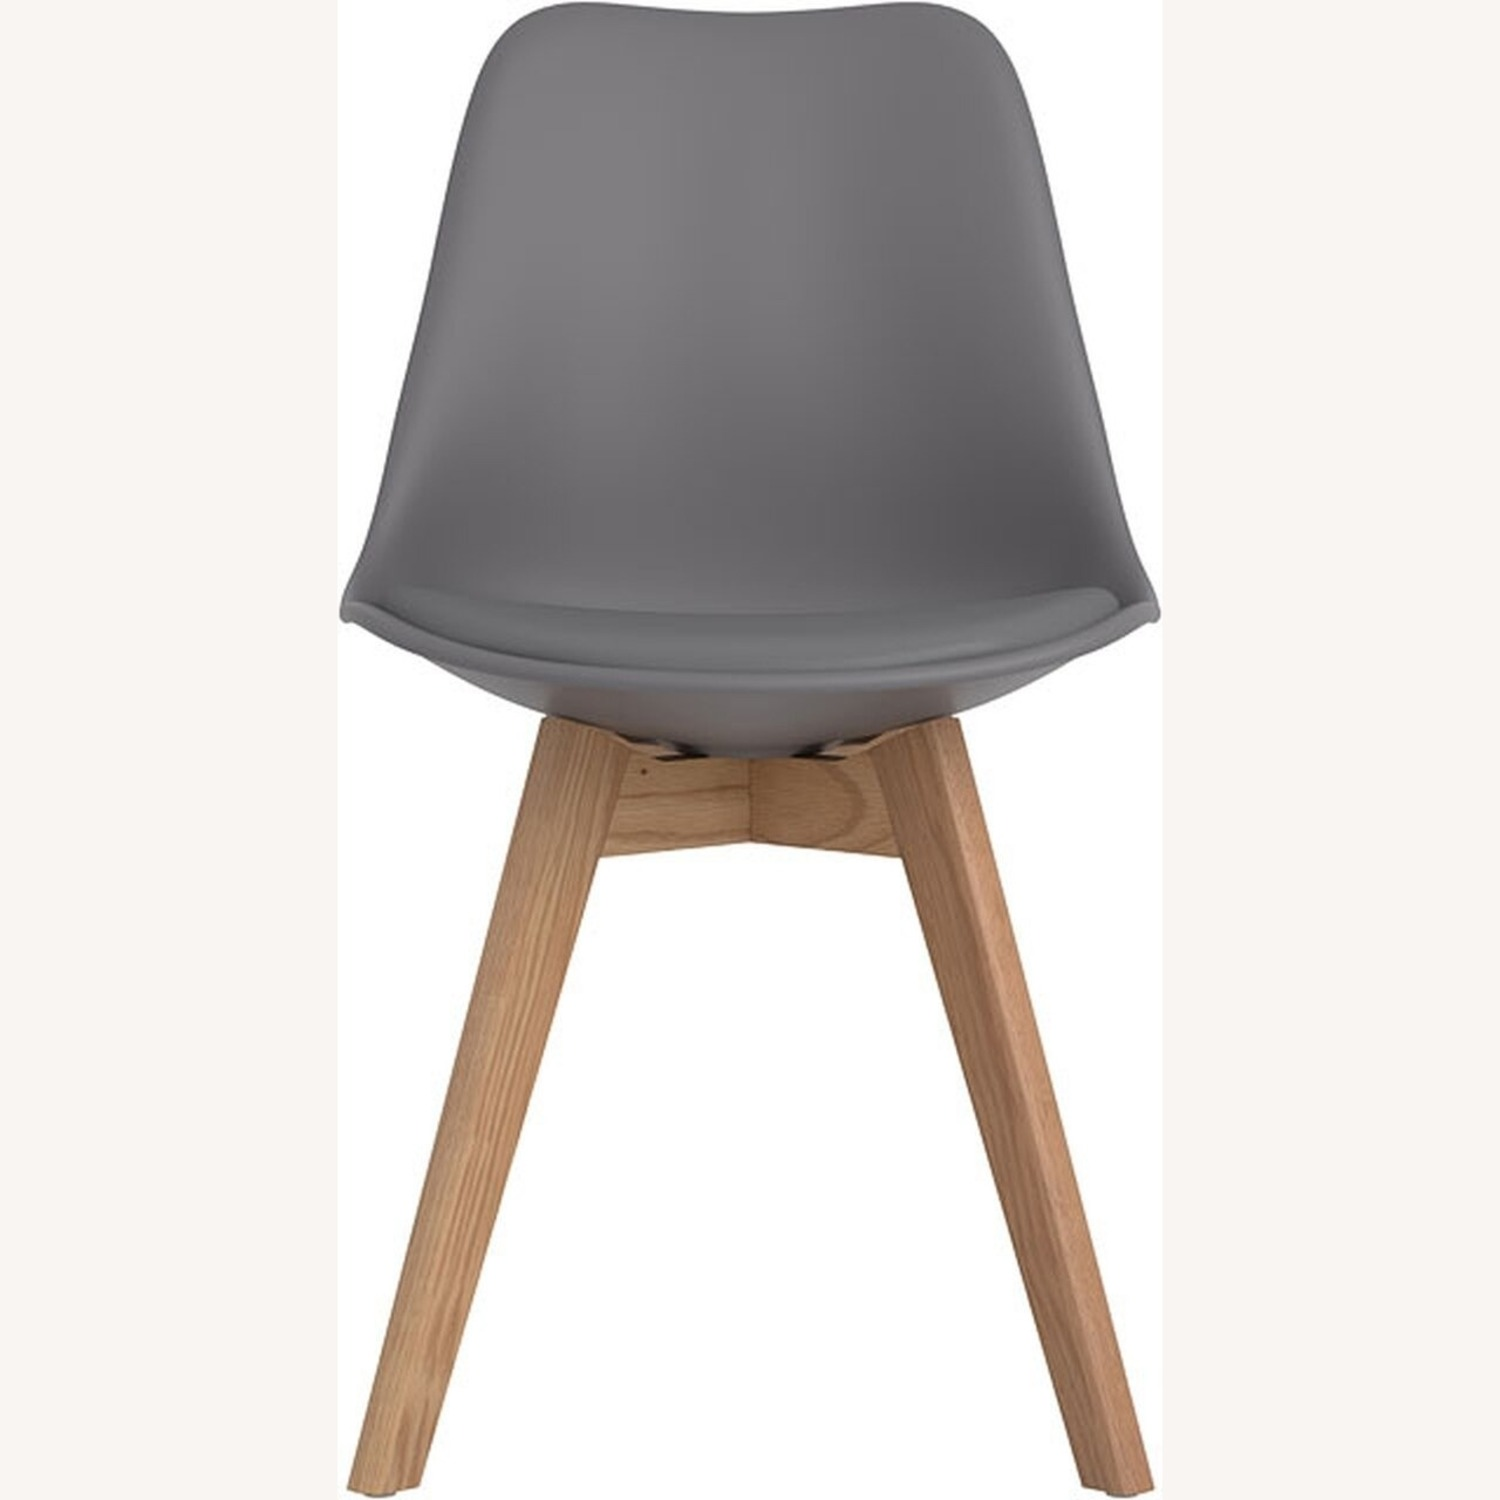 Modern Side Chair In Grey Leatherette - image-1